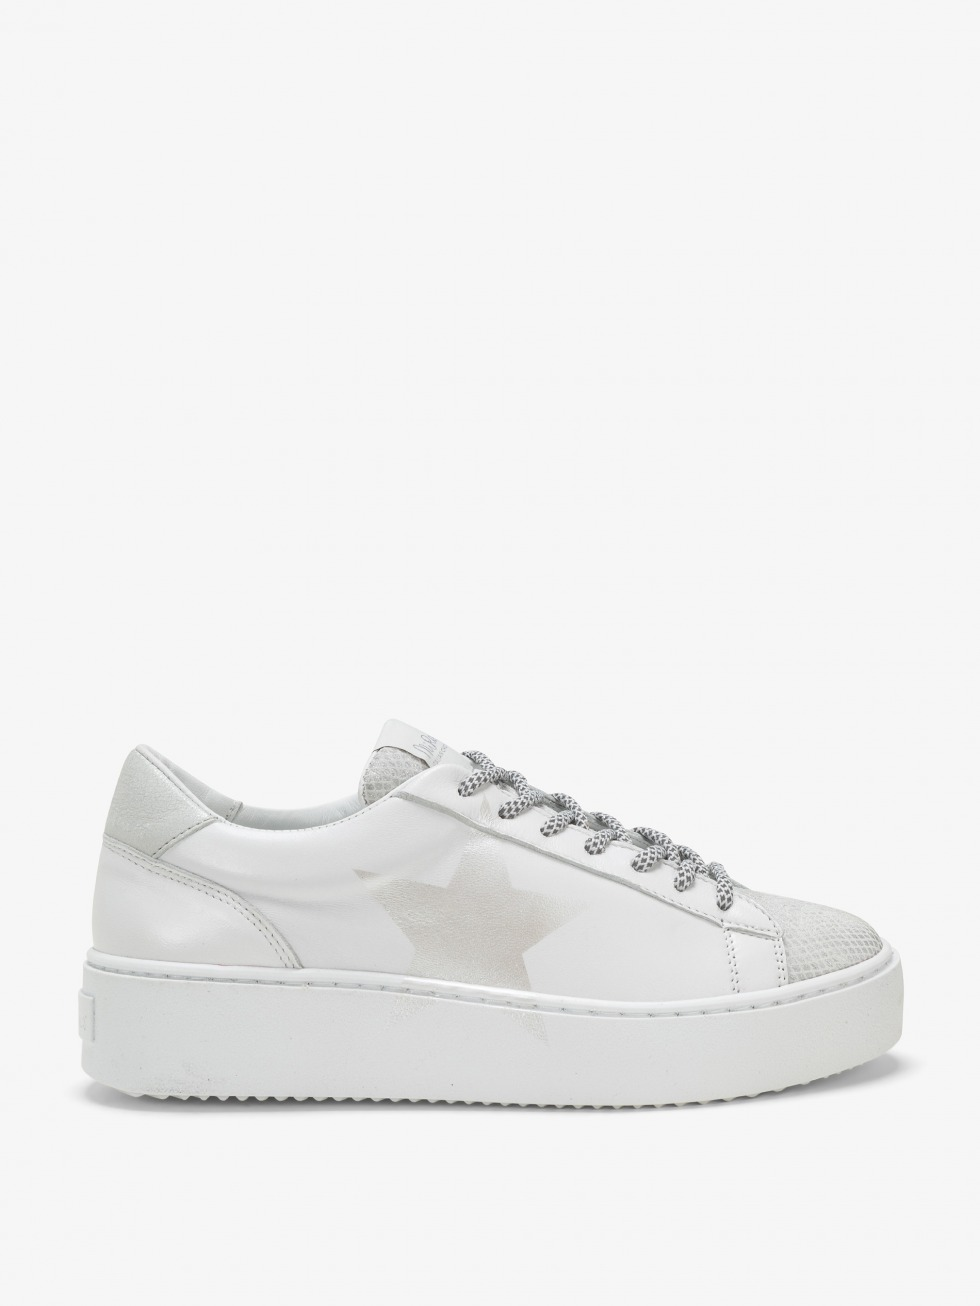 Cosmopolitan Sneakers Silver Blanched - Star